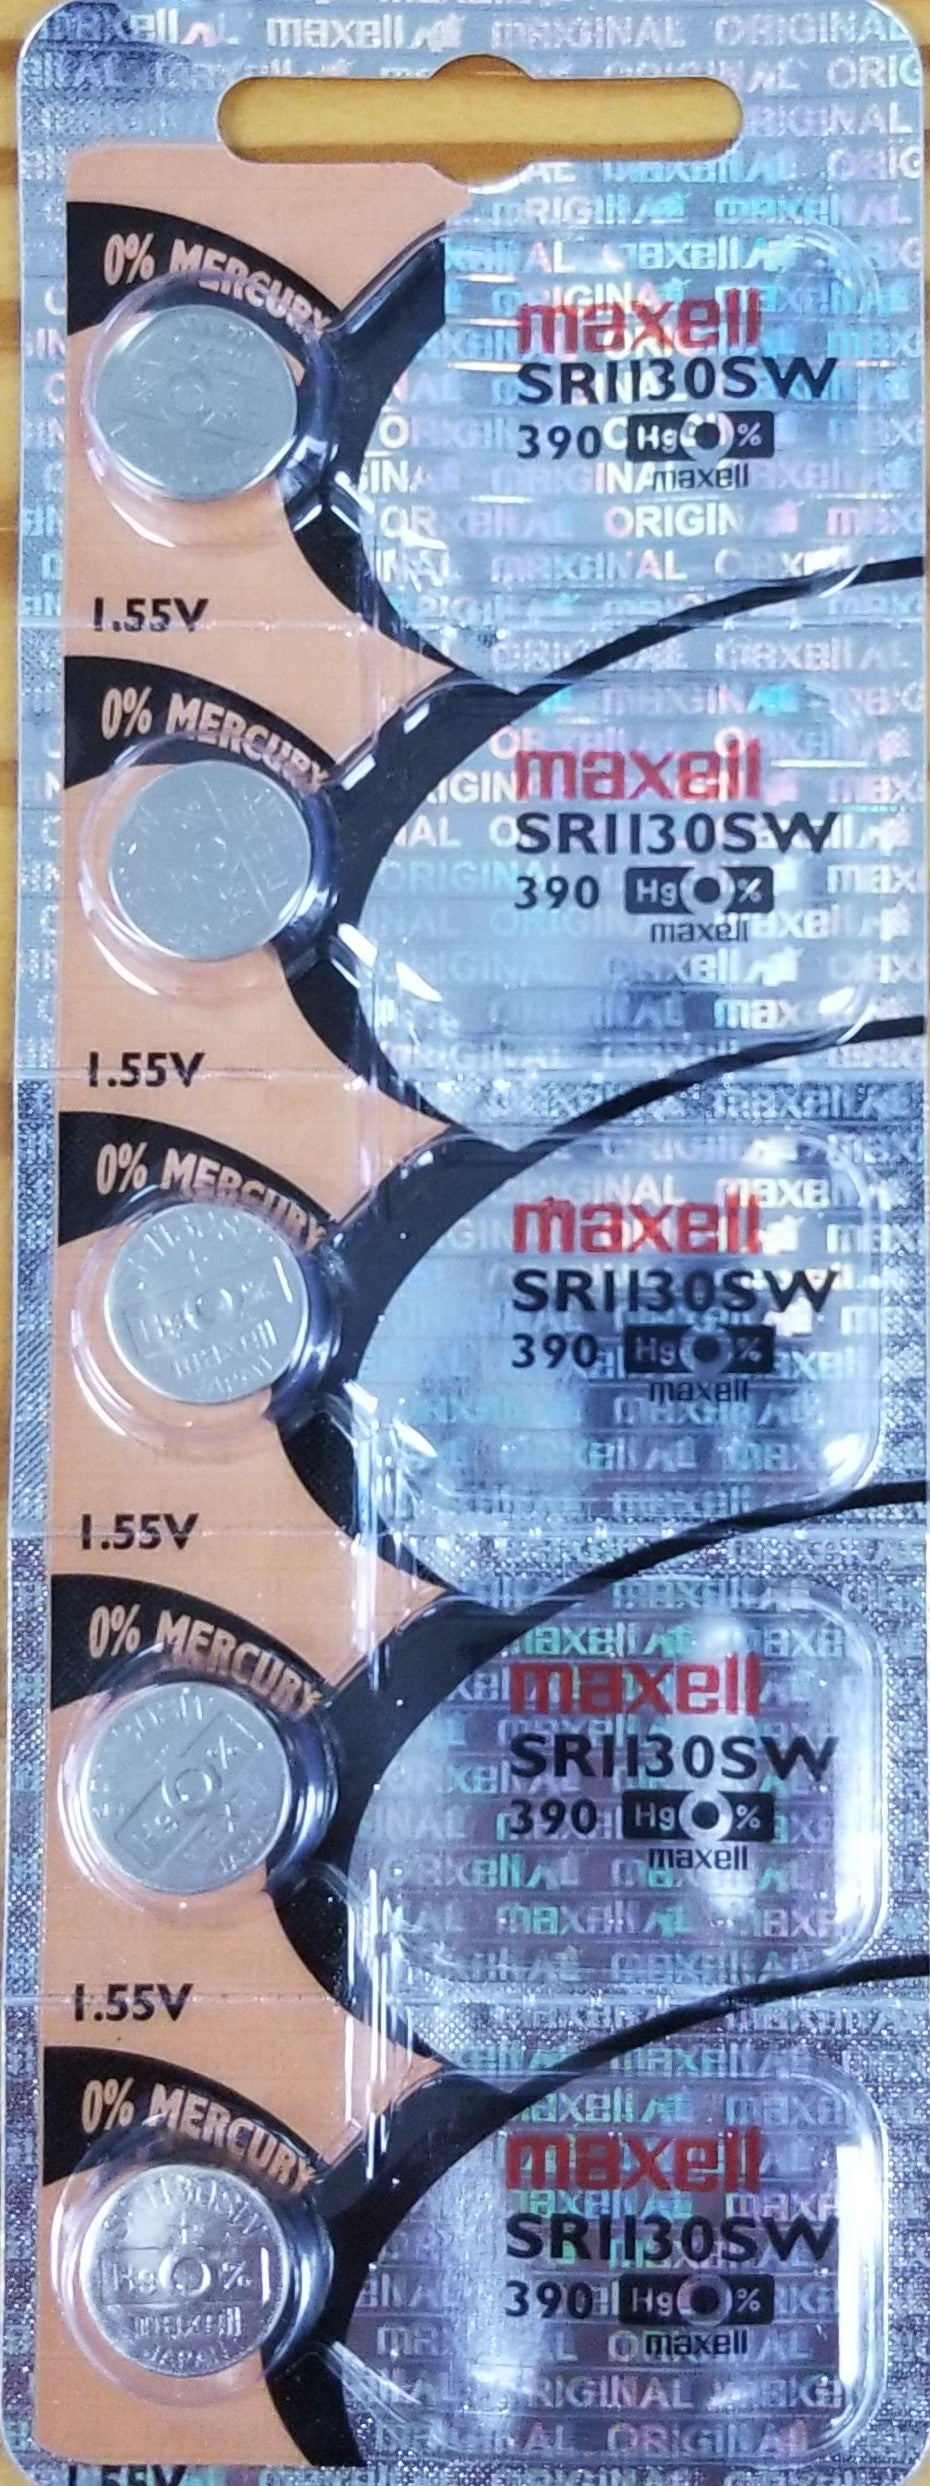 Maxell #390 SR1130SW 1.55v Silver Oxide Battery - Tear Strip of 5